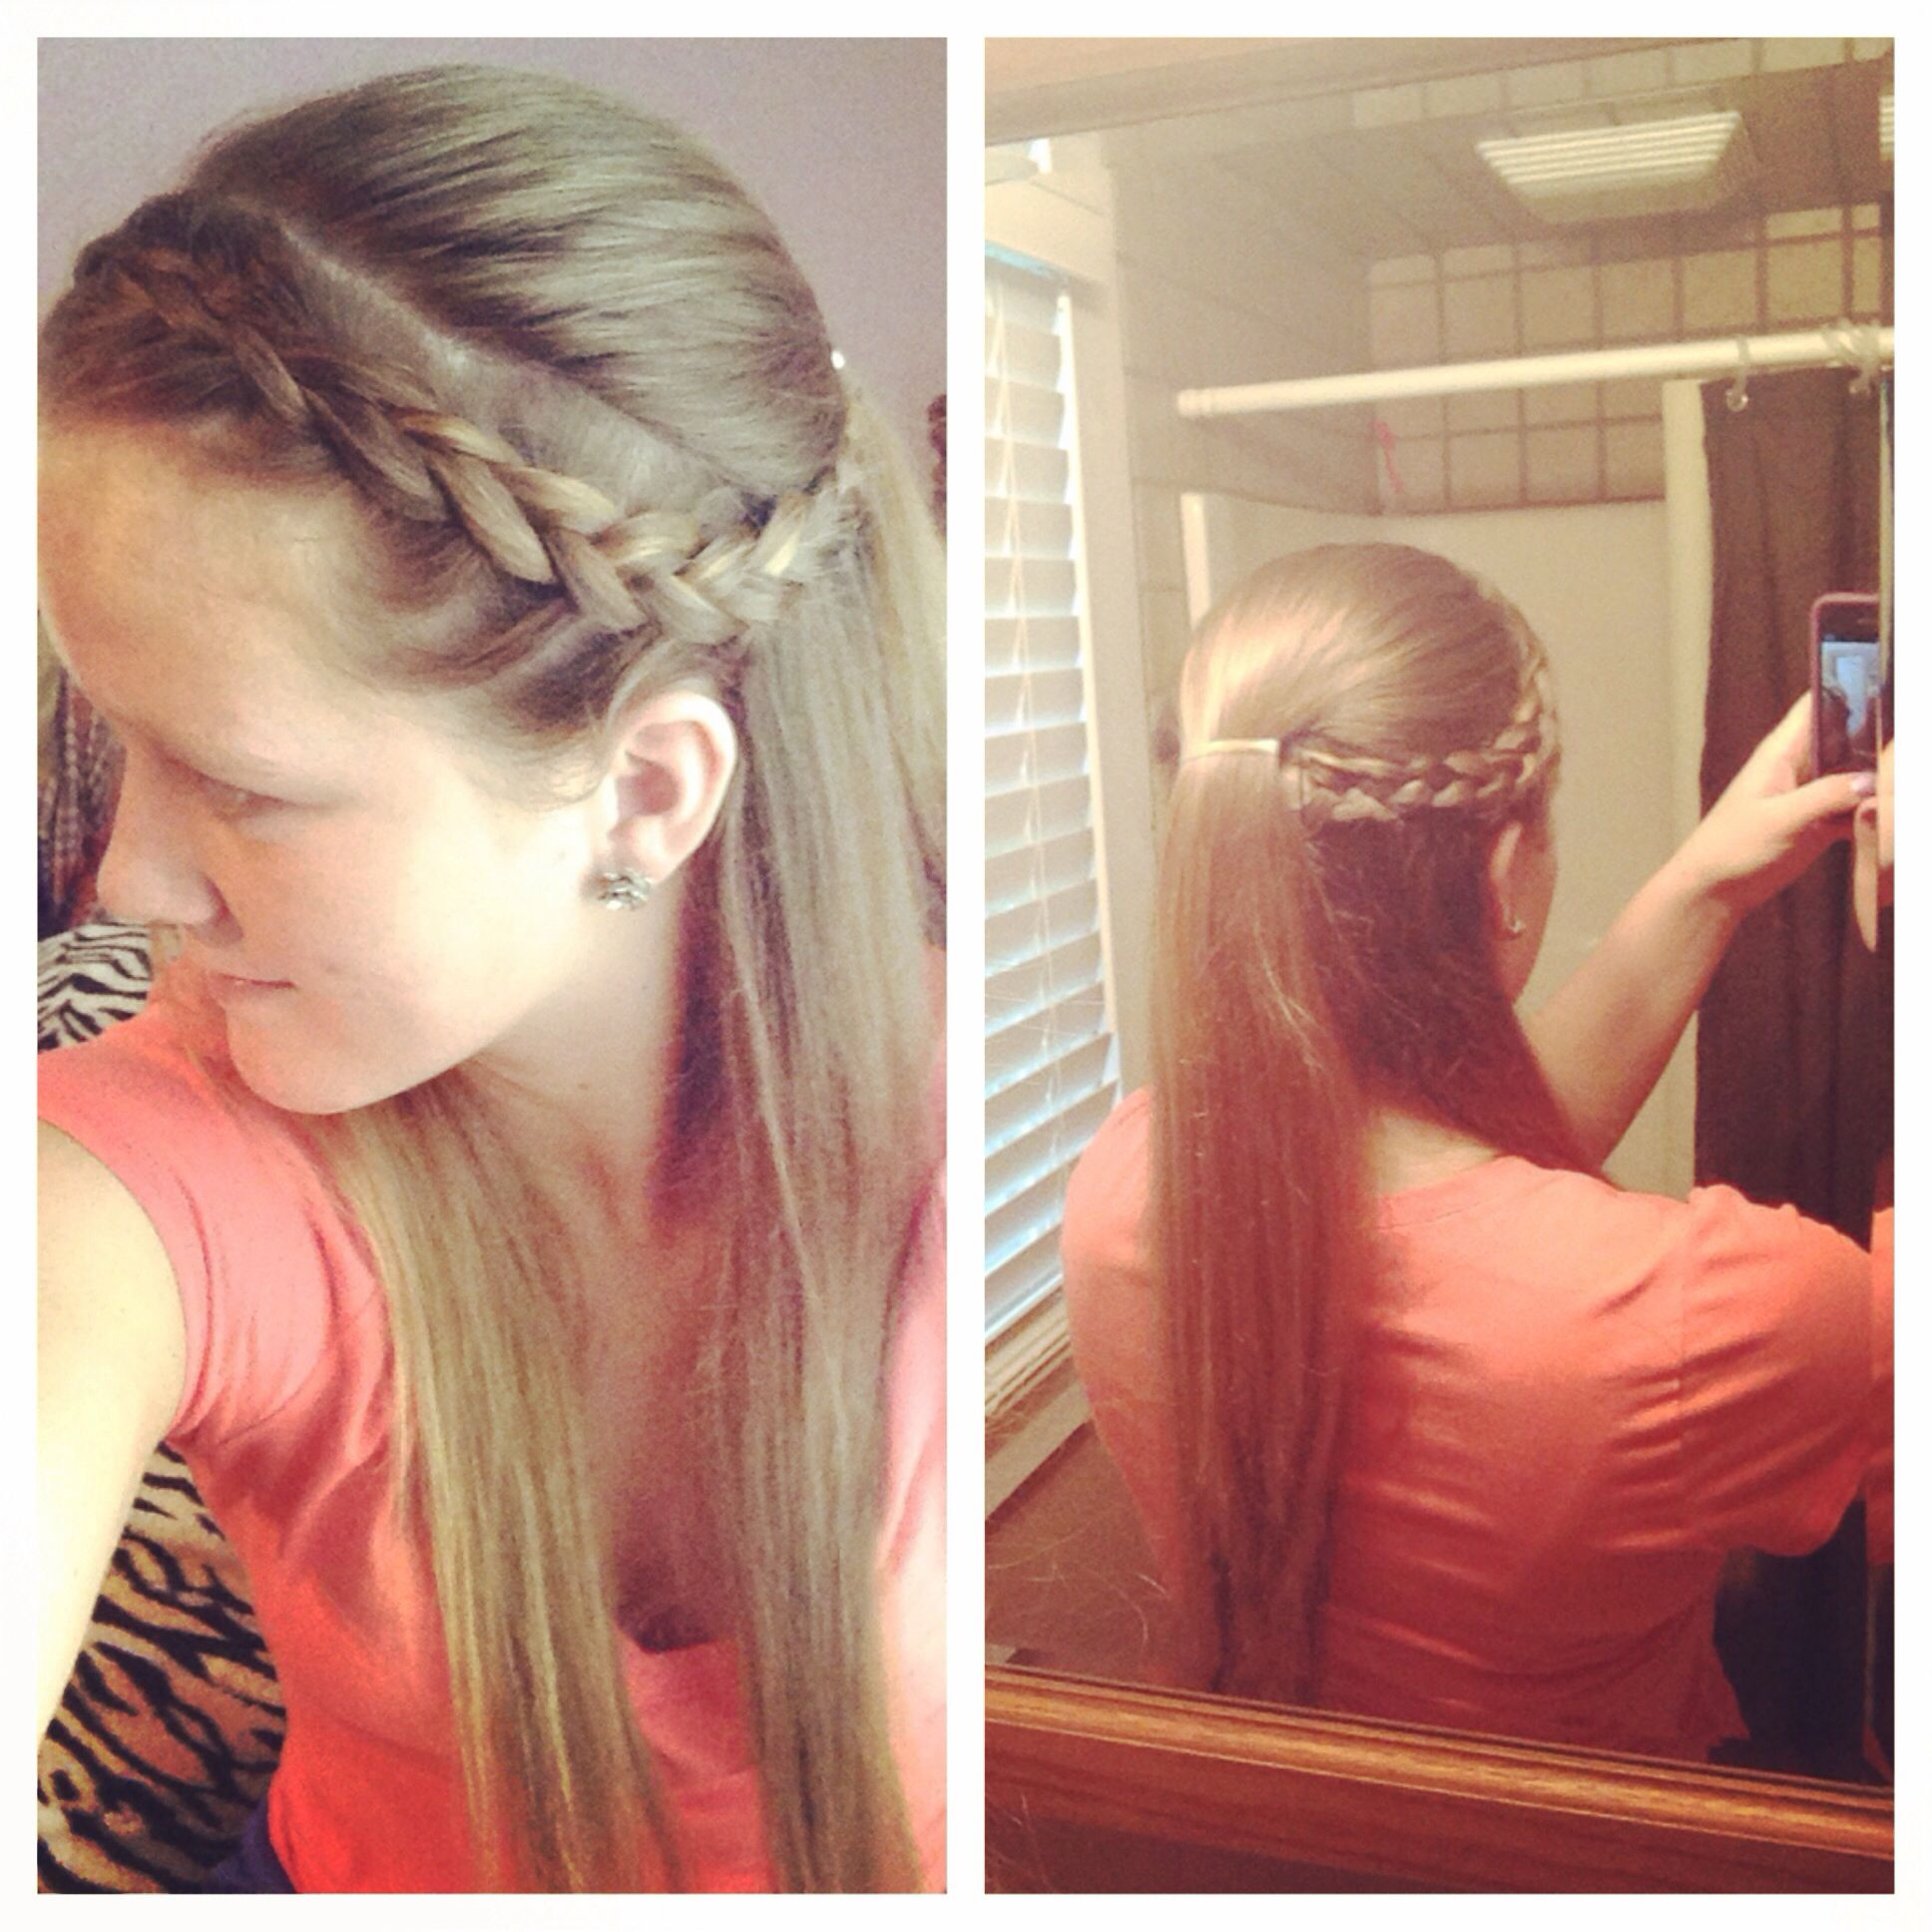 Braided my bangs and pulled them back to tuck on the teased part of